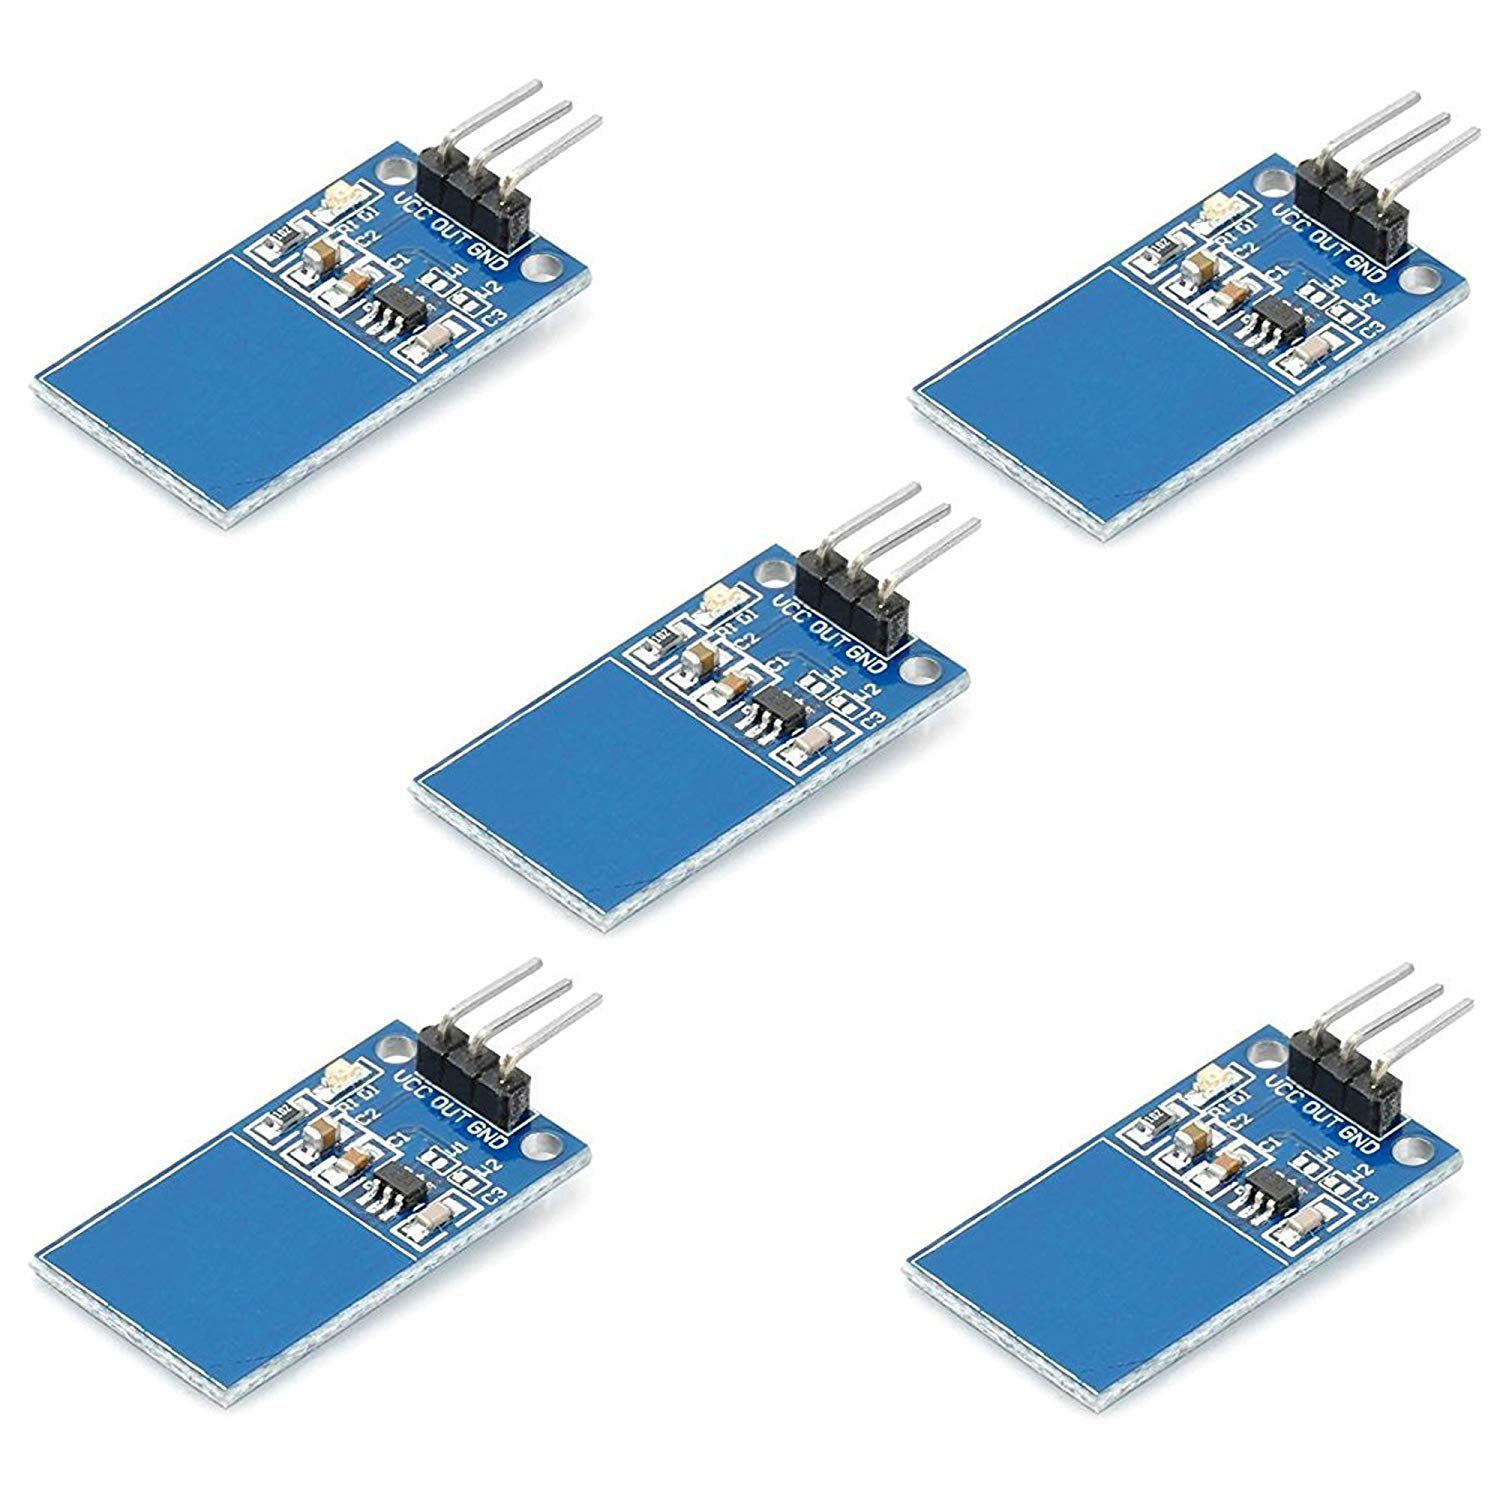 5pcs TTP223 Touch Sensor Module Capacitive Digital Touchpad Detector with LED Status Indicator and Bent Pins Alternative for Keypads and Push Button Keys from Optimus Electric